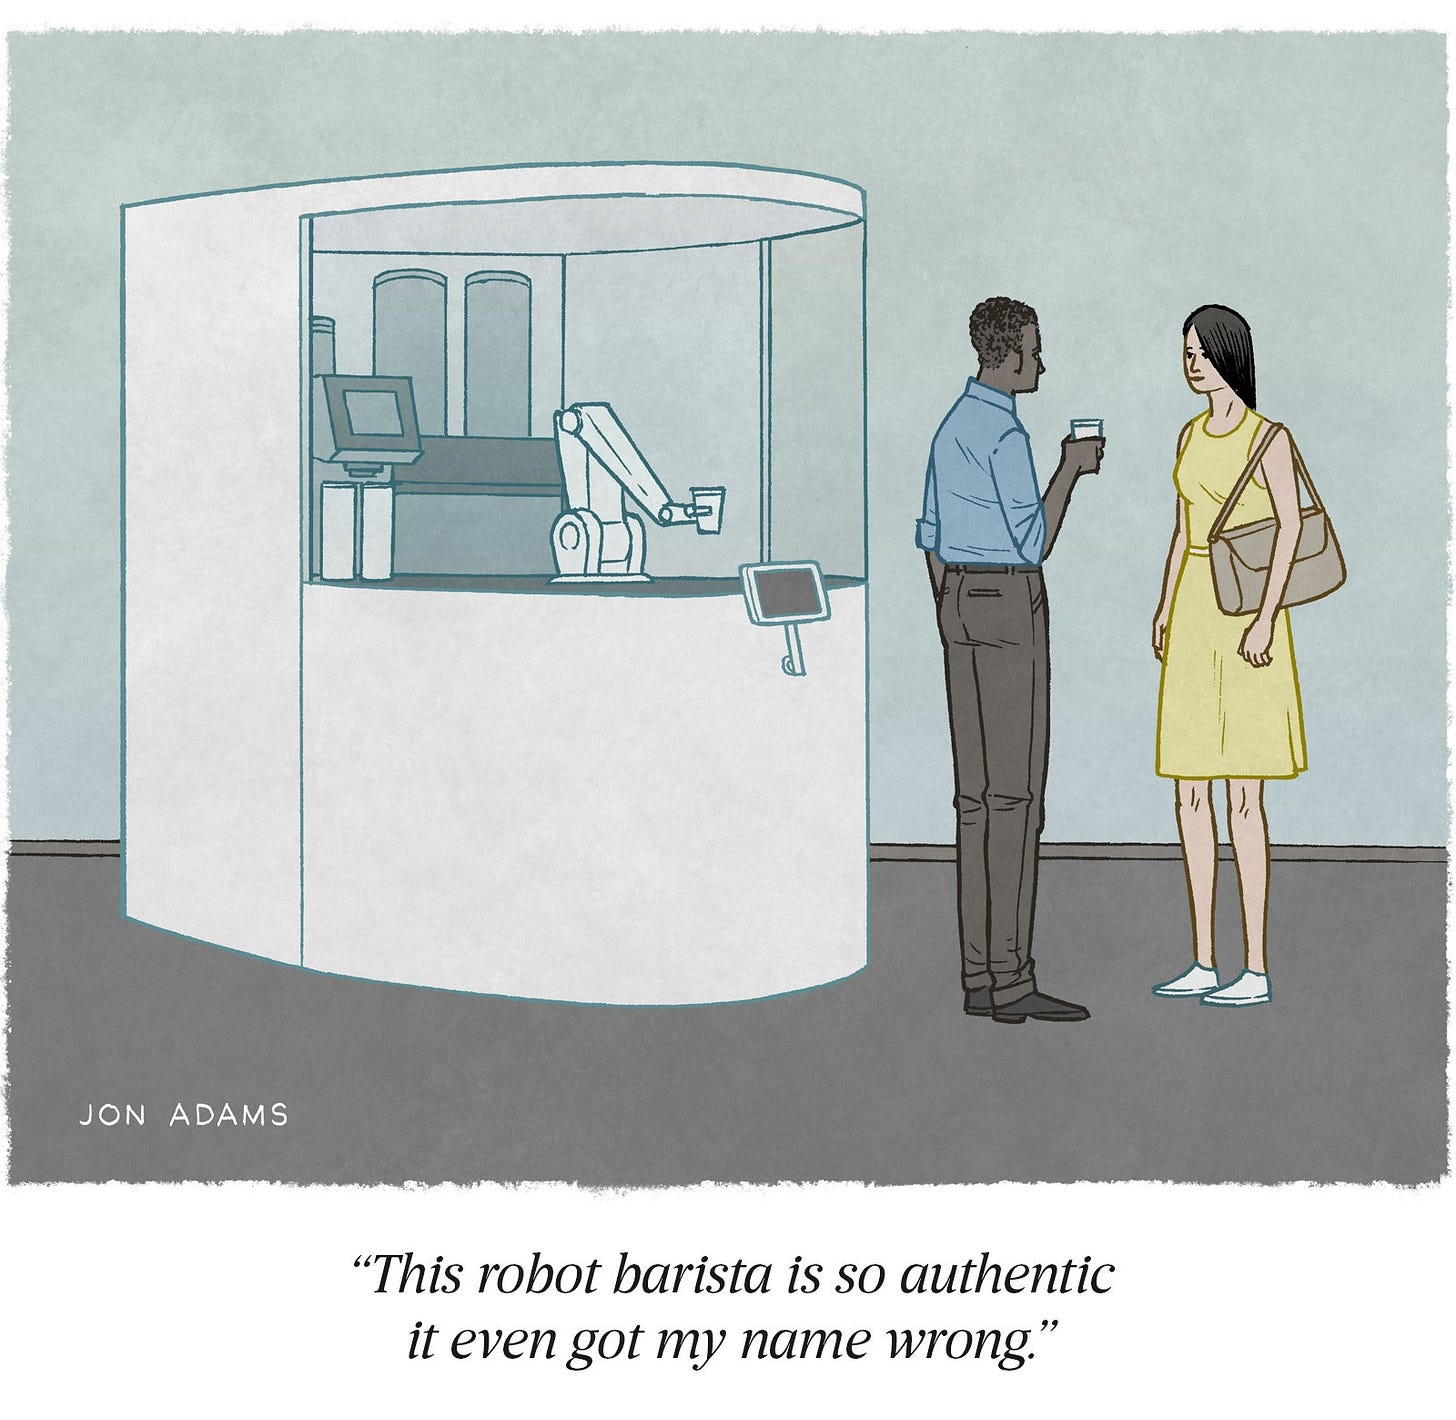 Cartoon of man getting coffee from machine says This robot barista is so authentic it even got my name wrong